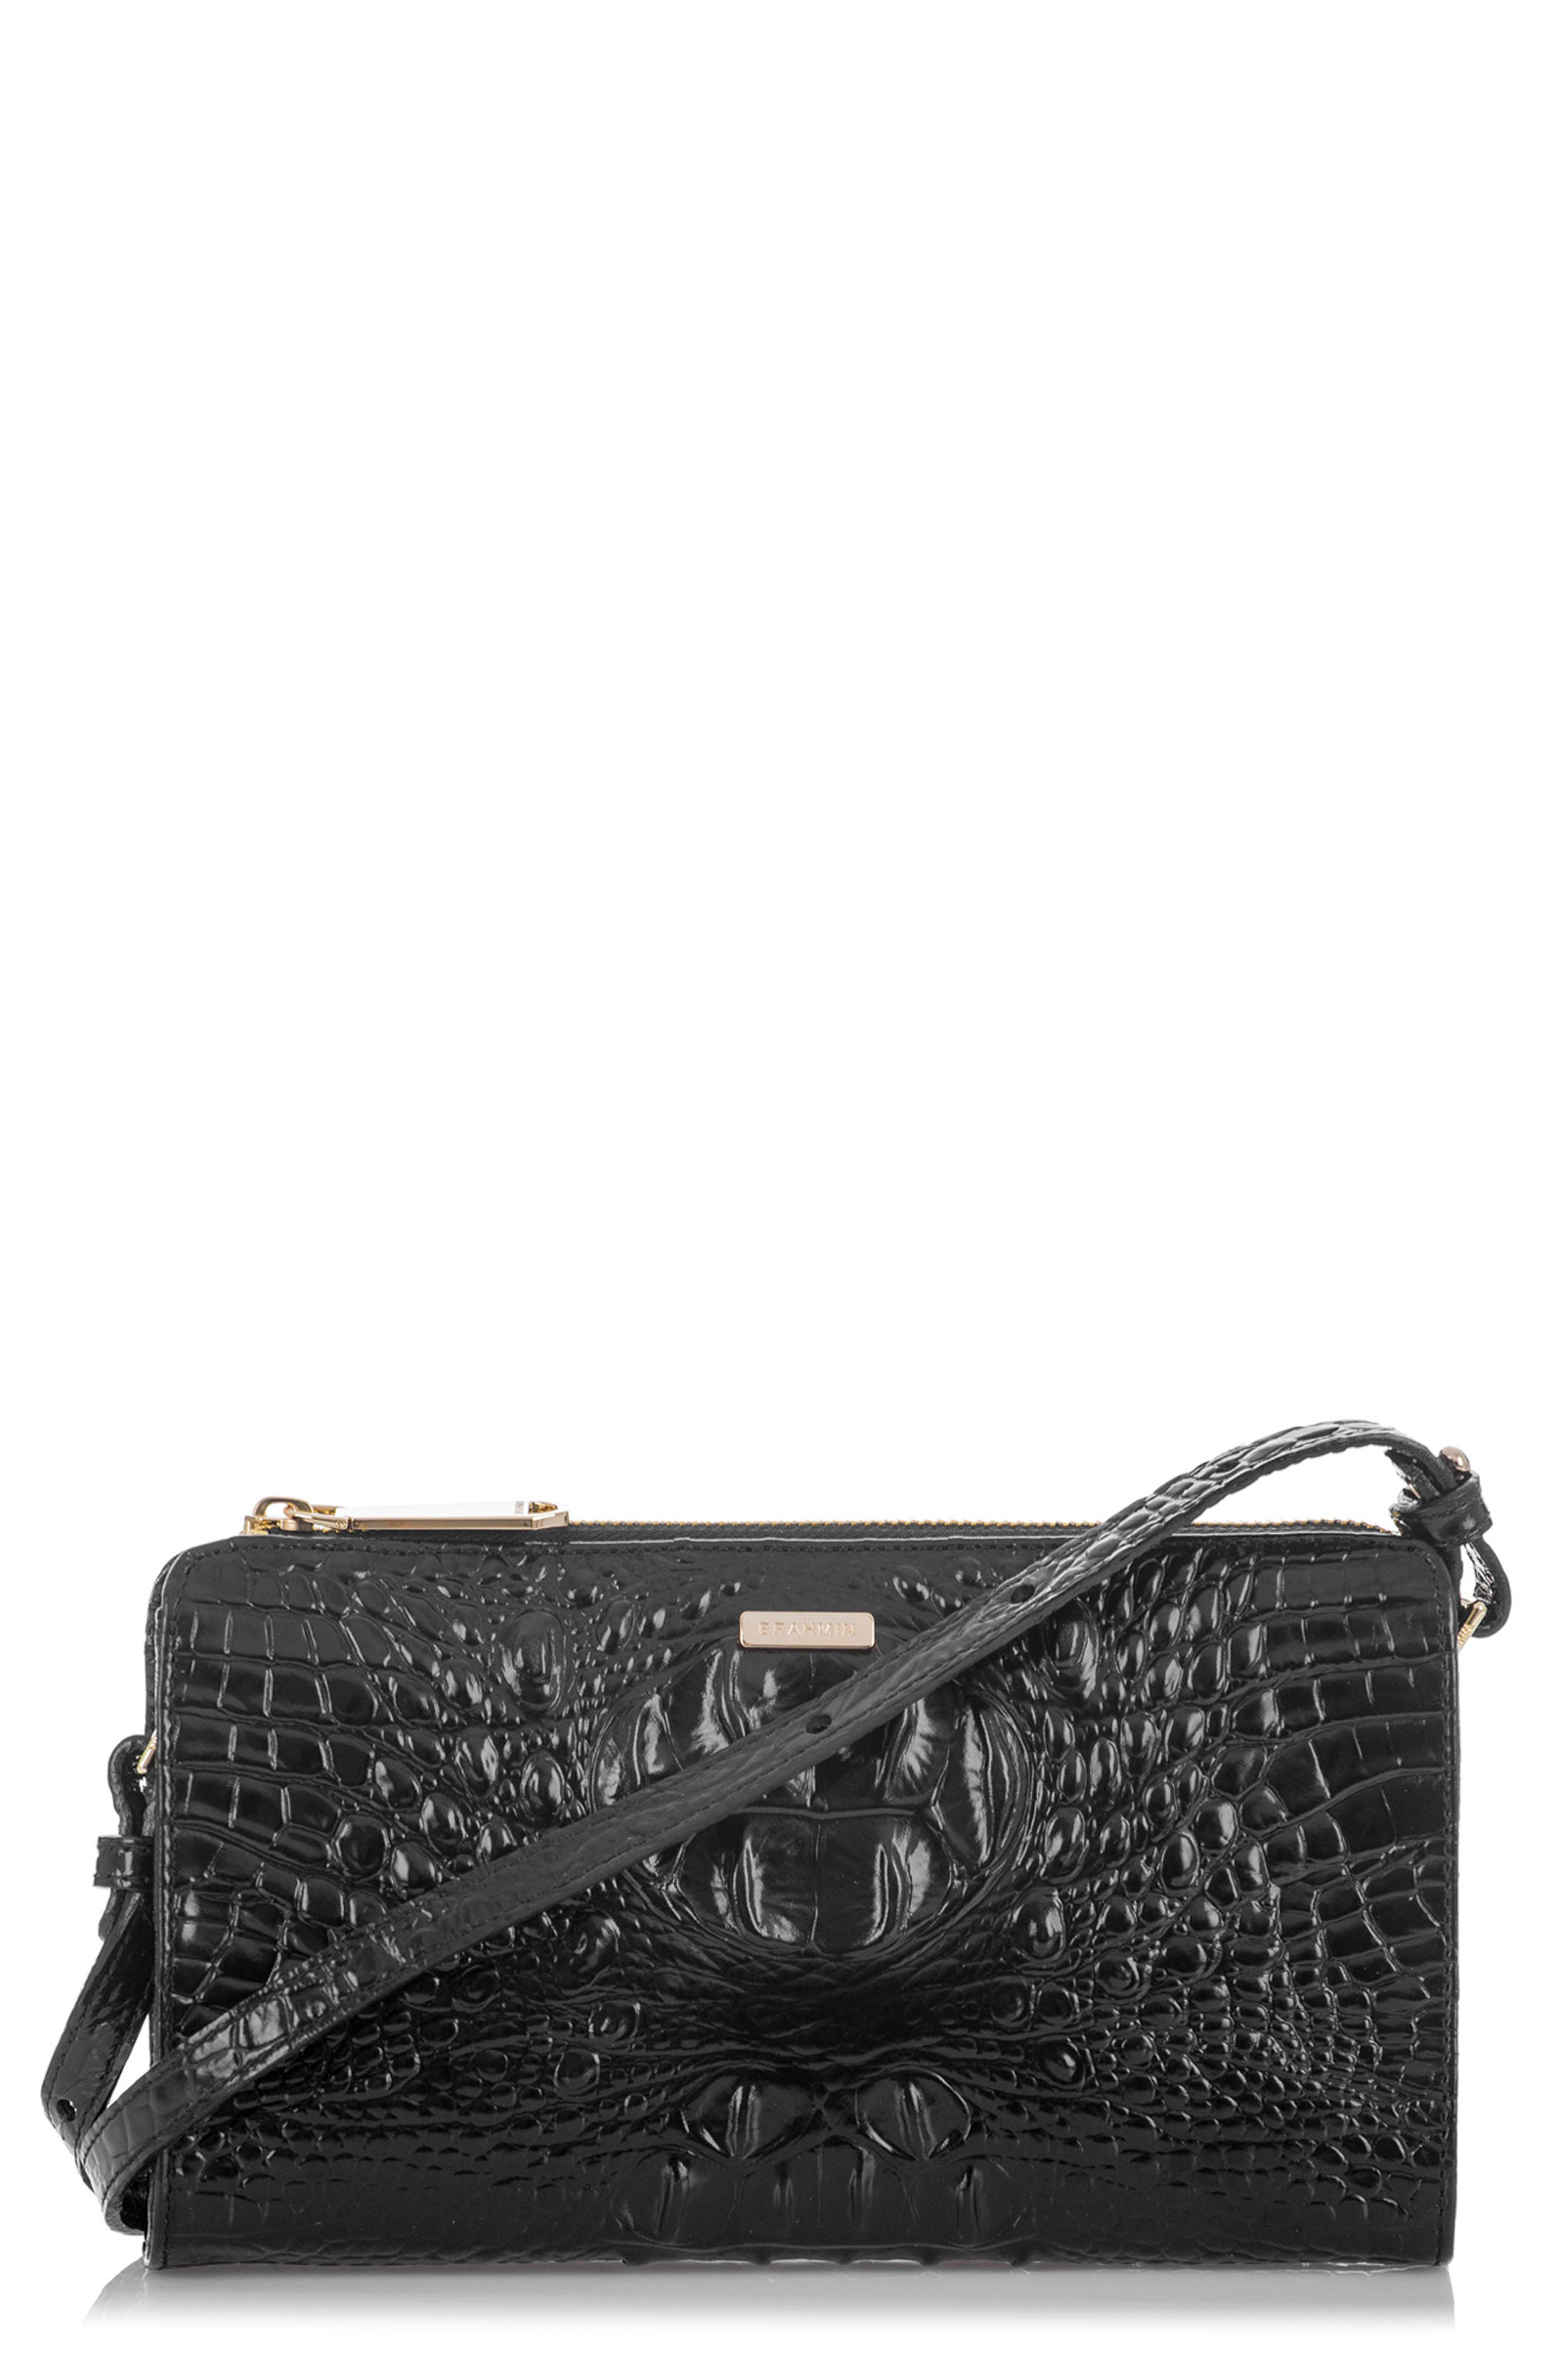 Brahmin Sienna Leather Crossbody Bag